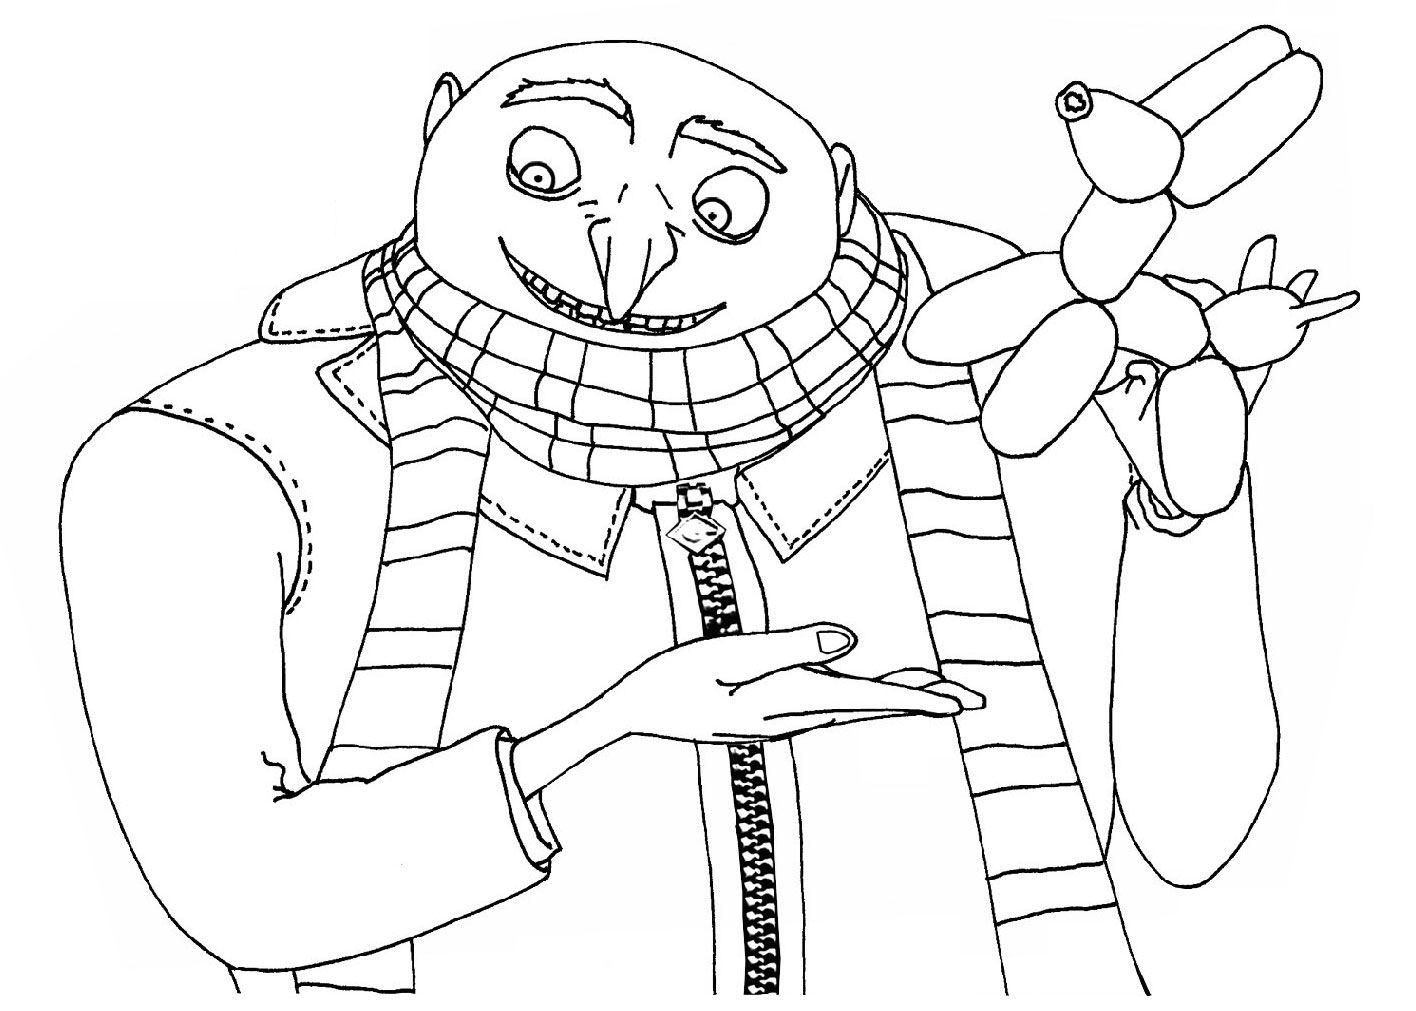 Coloring Pages For Universal Studios : Kids under despicable me coloring pages color sheets